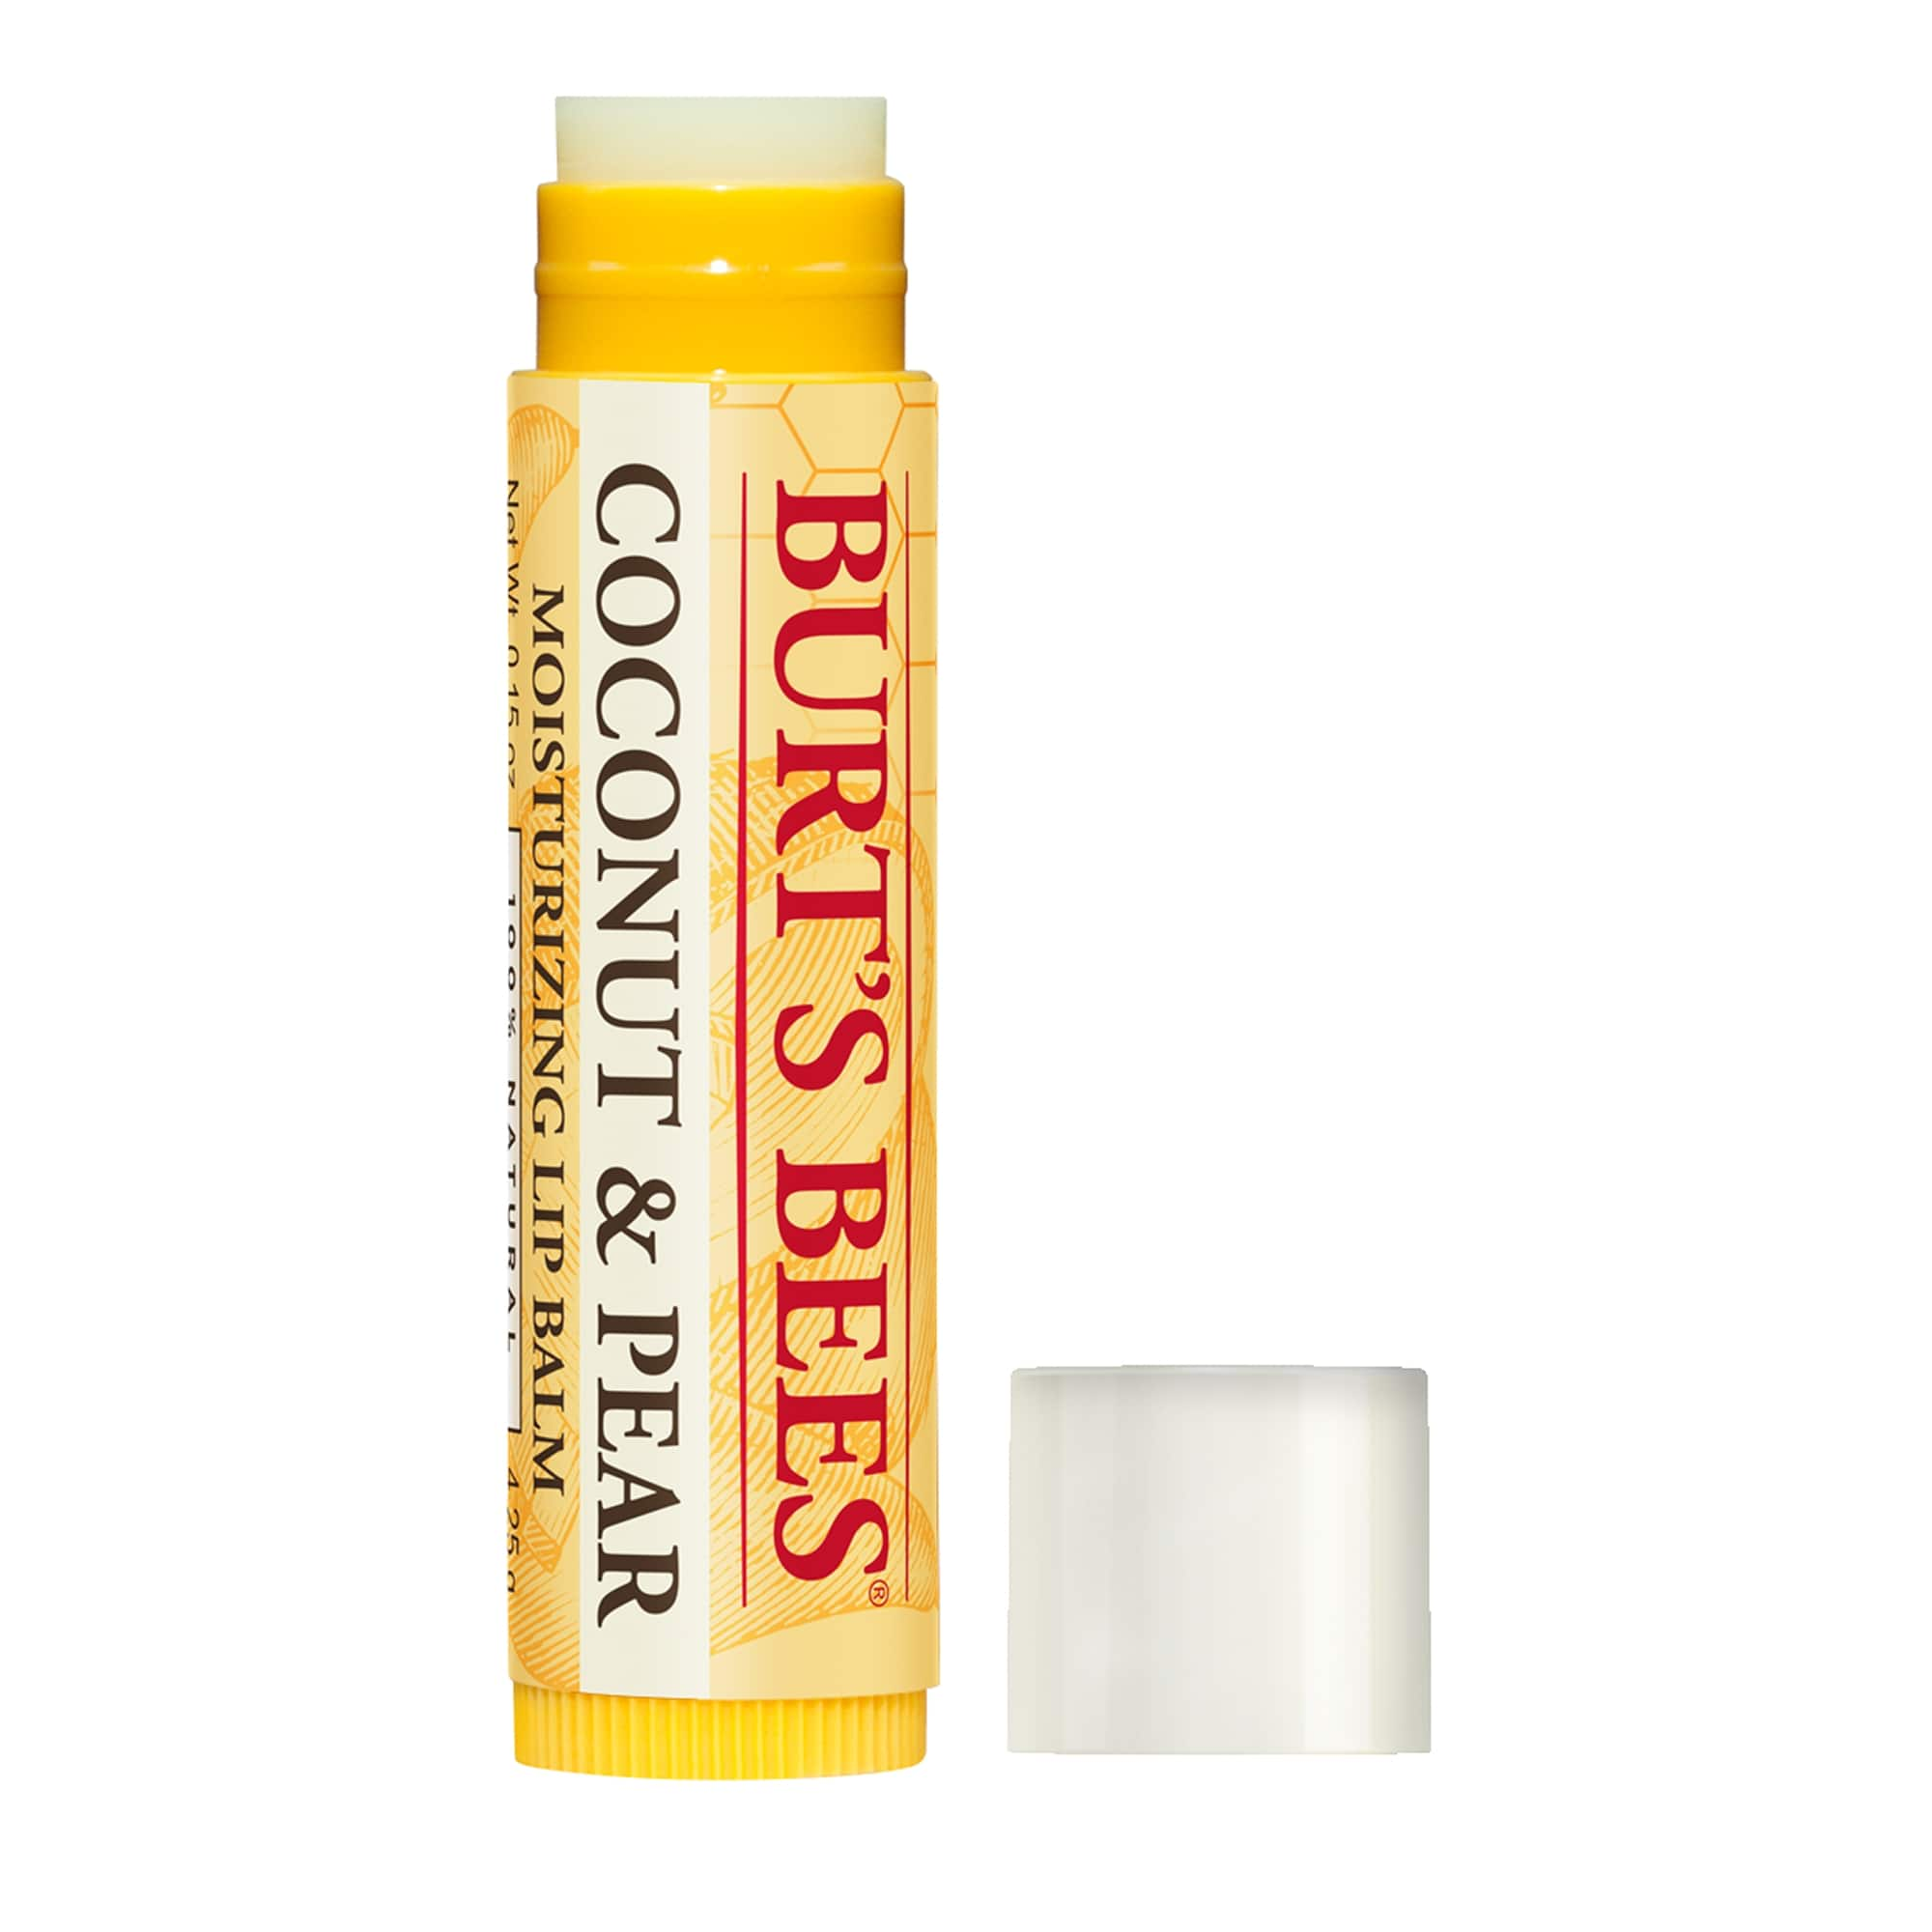 BALSAMO LABIAL COCONUT AND PEAR 4.25G BURTS BEES